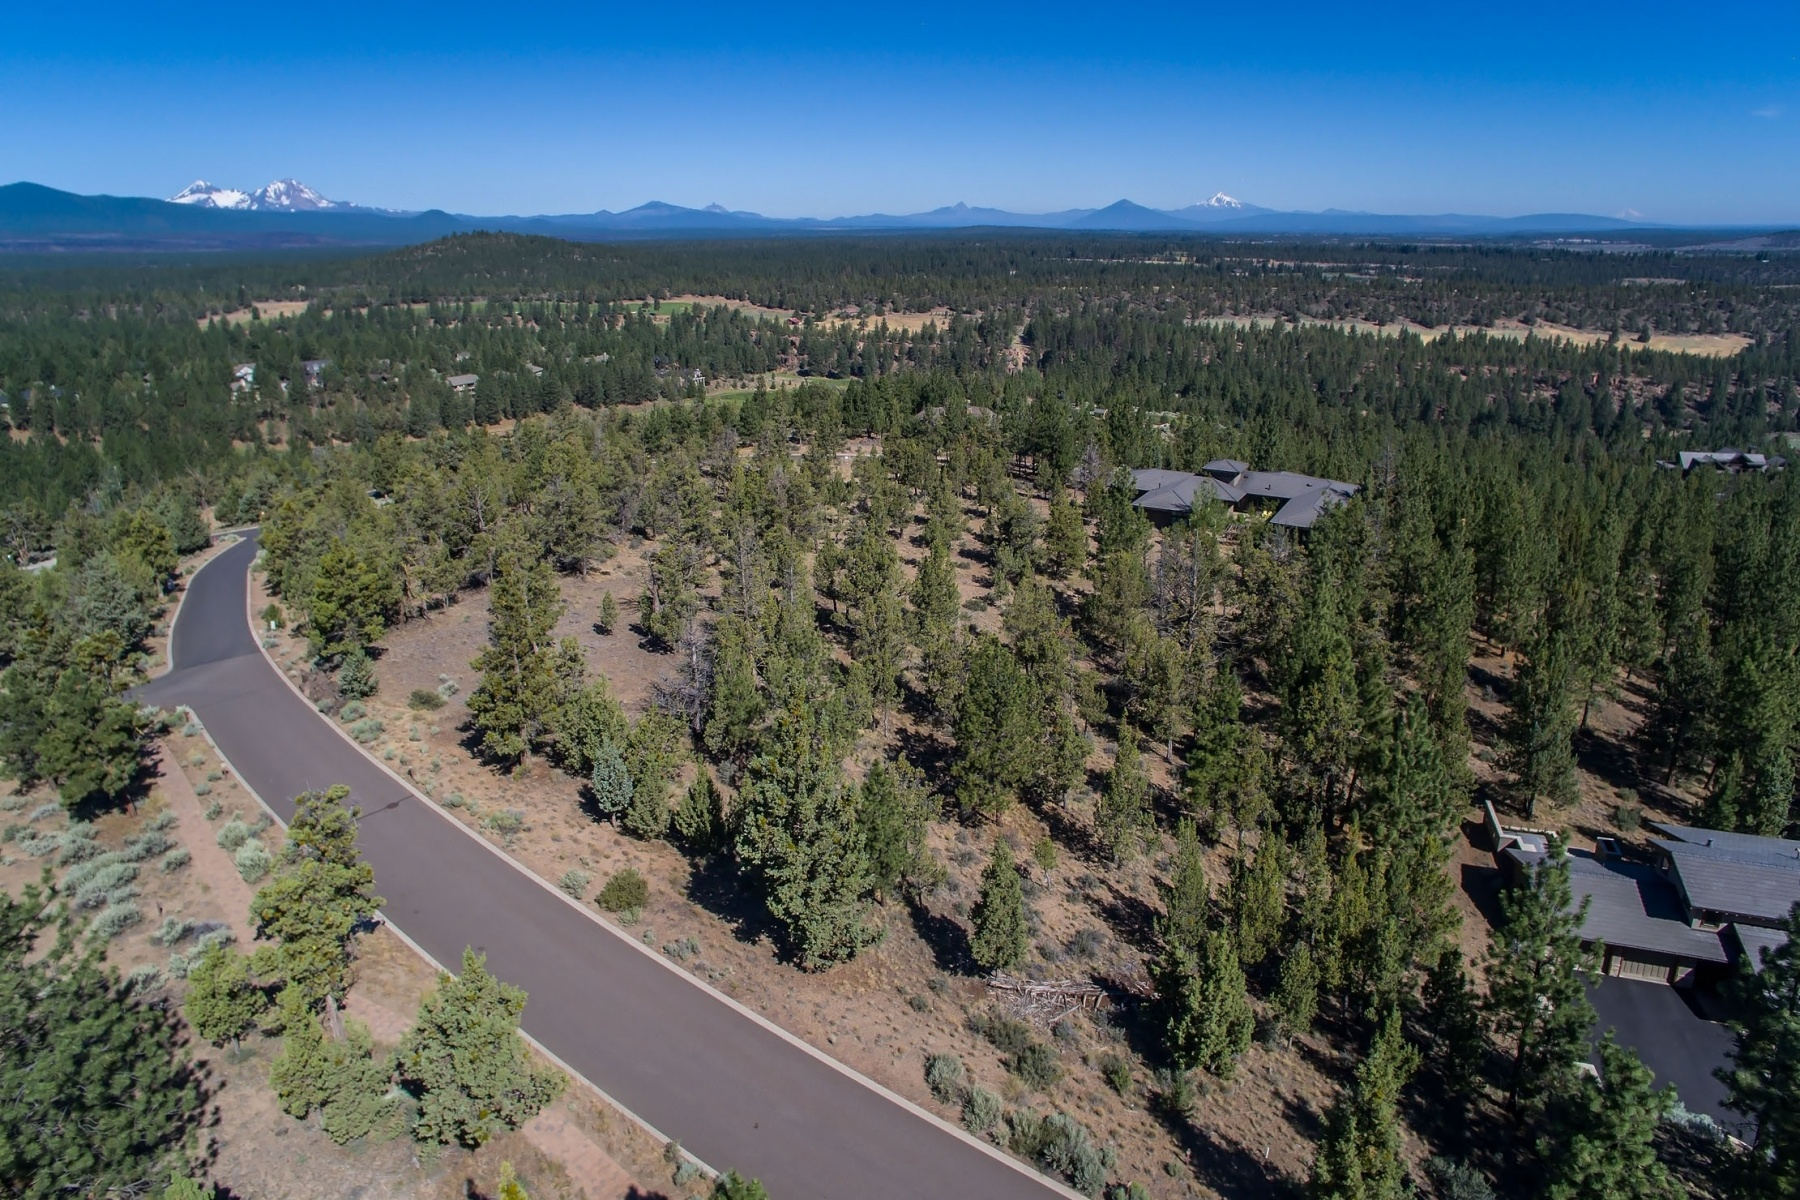 Land for Sale at 1777 NW Wild Rye Circle Lot 15, BEND 1777 NW Wild Rye Cir Lot 15 Bend, Oregon, 97703 United States